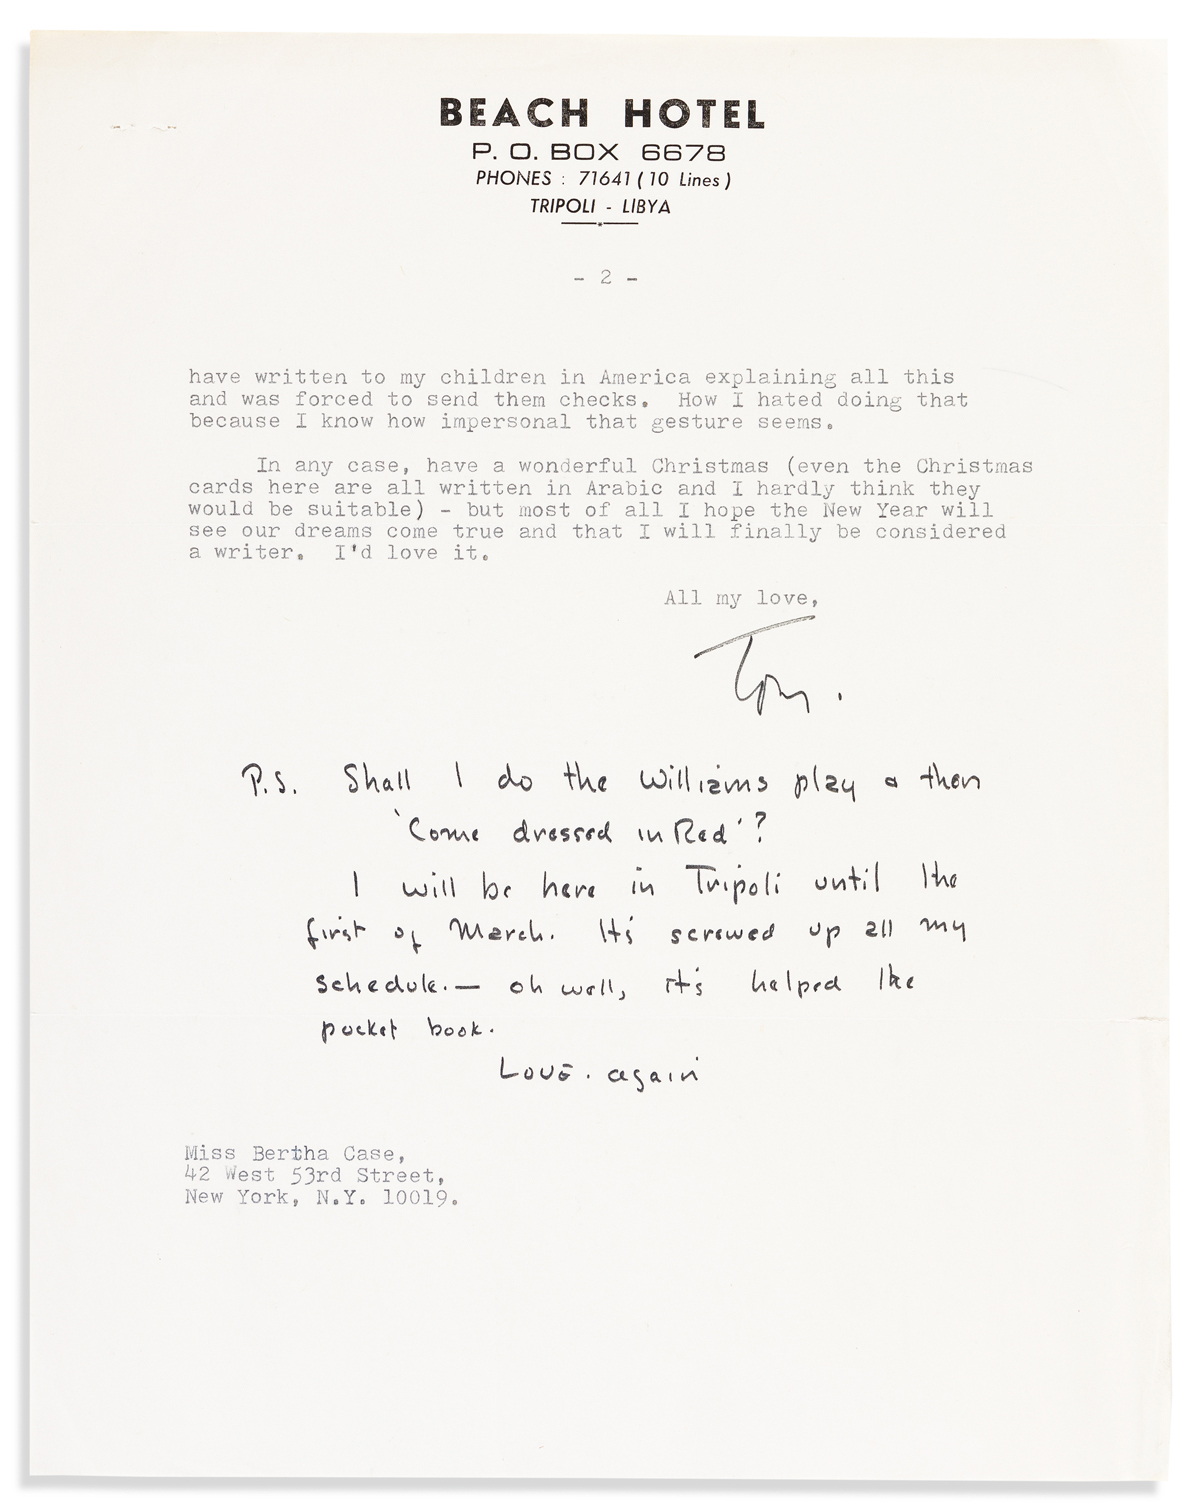 QUINN, ANTHONY. Typed Letter Signed, Tom, to Bertha Case (Dear Bertha), concerning the writing of his autobiography,